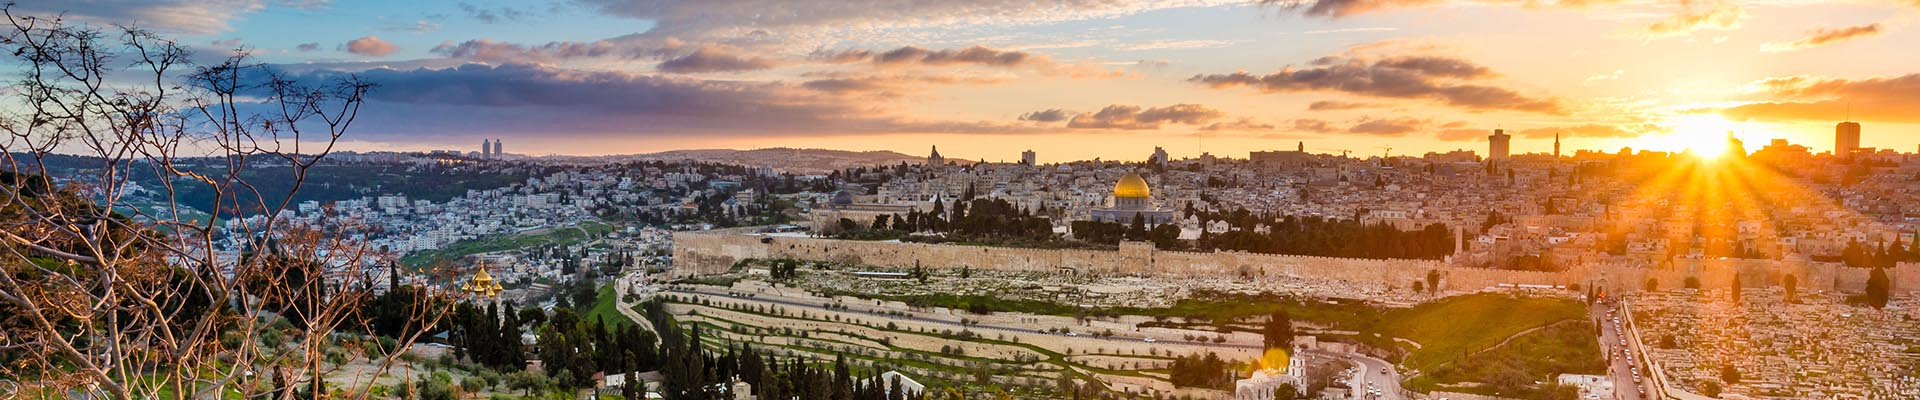 10 Day Messianic Tour of Israel  - Jerusalem Focus